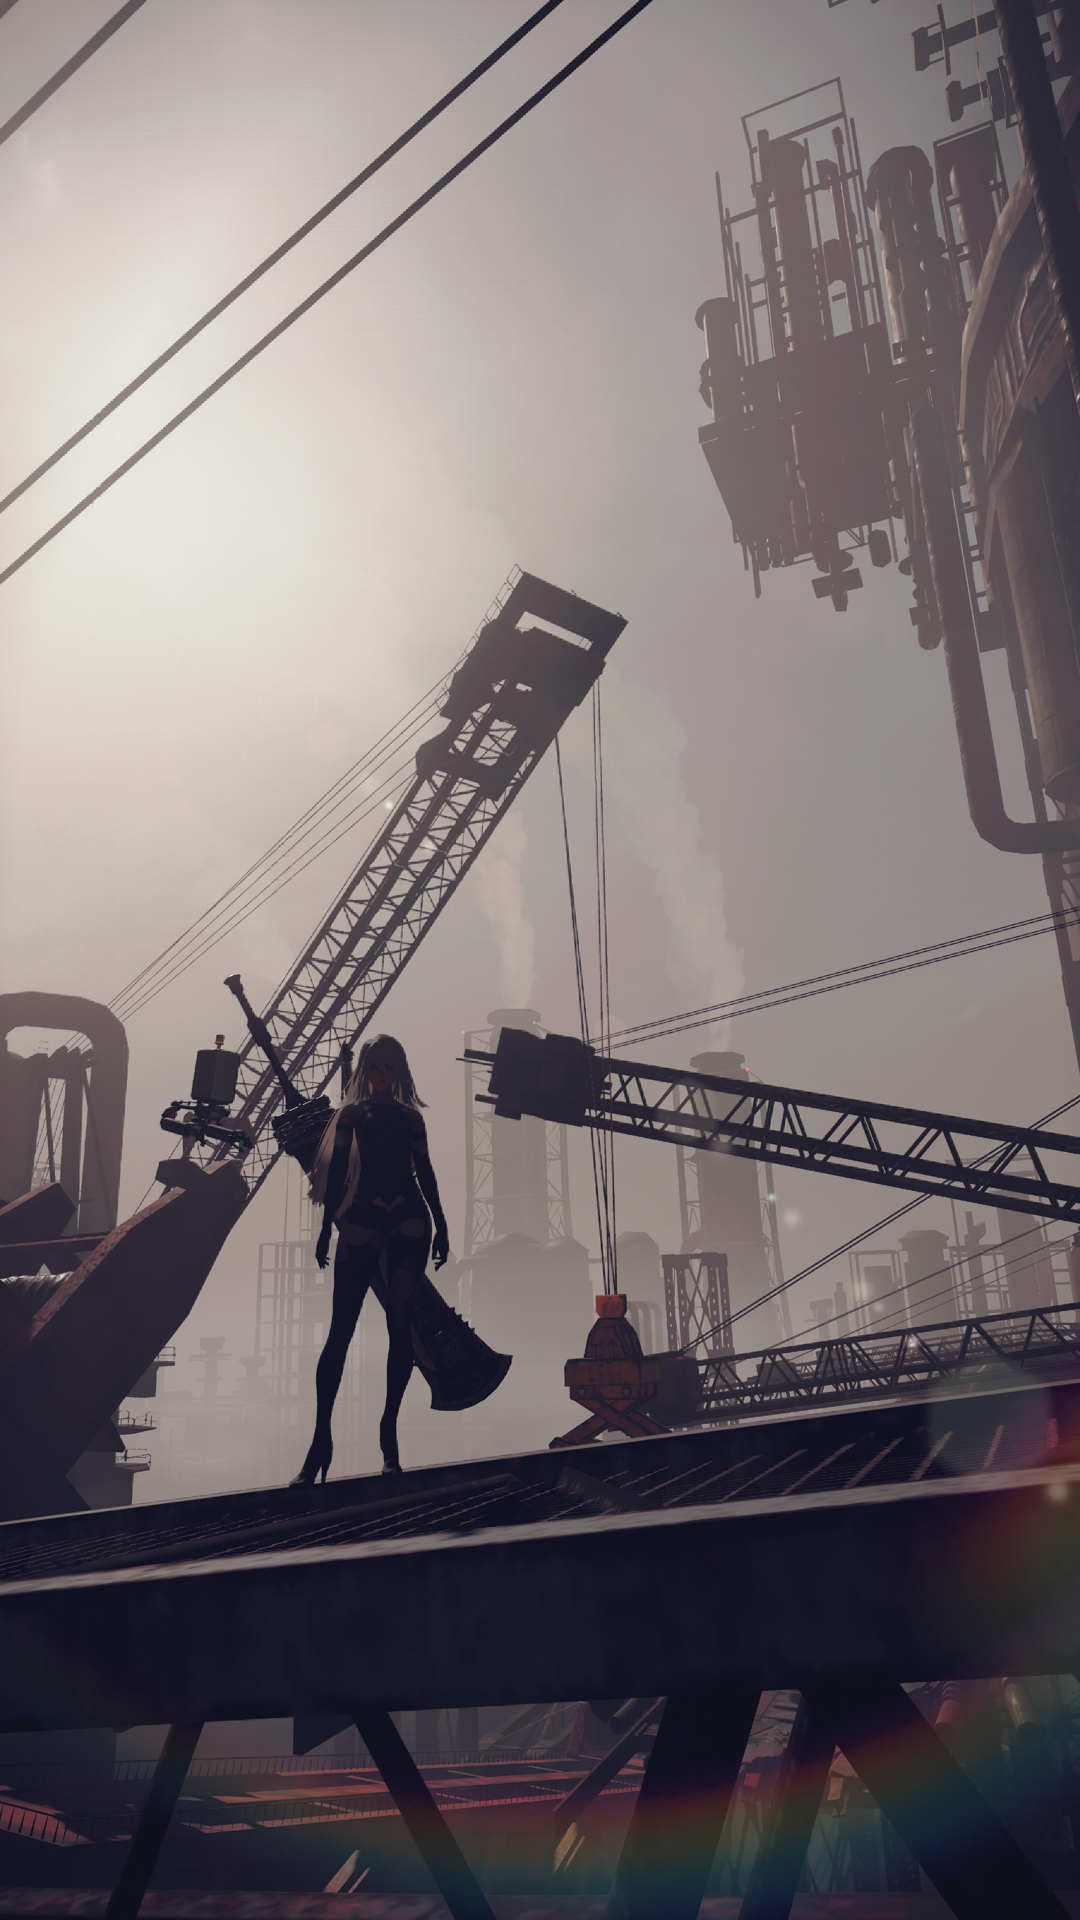 Fall Be Kind Wallpaper New Nier Automata Screenshots Introduce 9s And A2